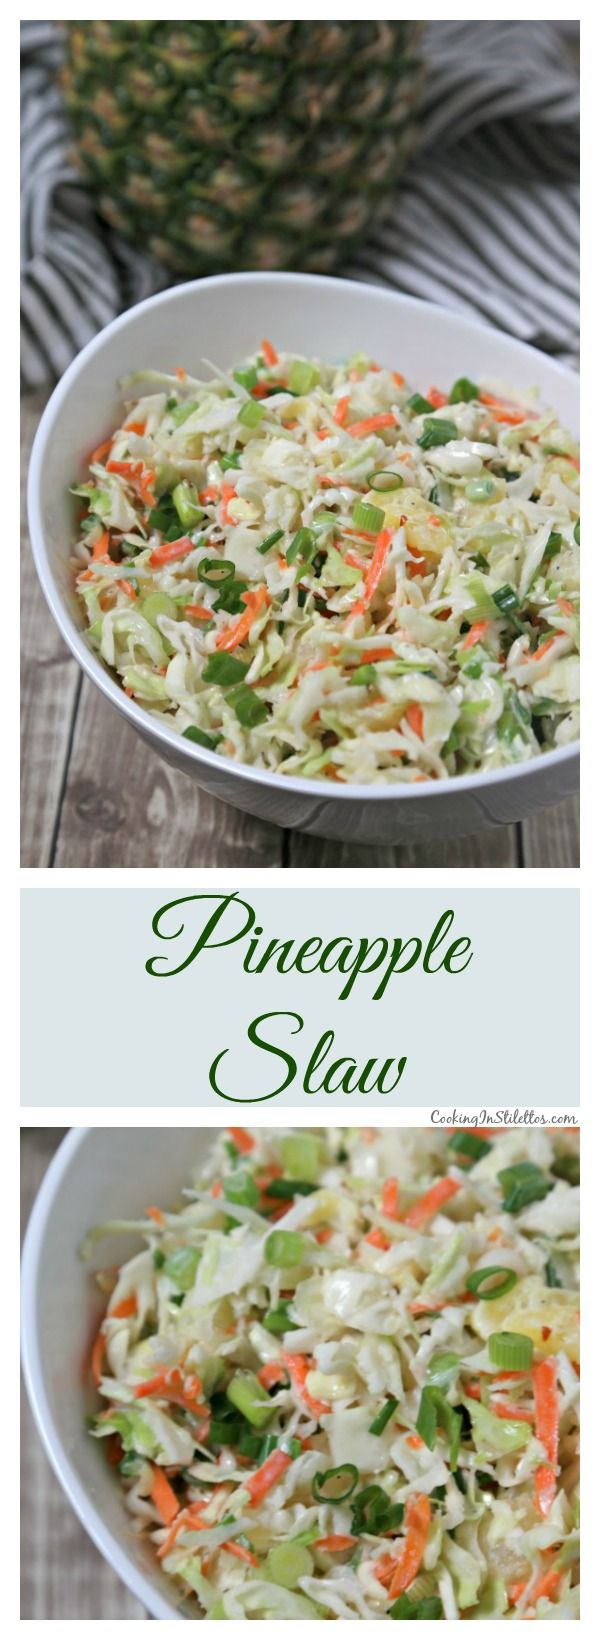 This easy Pineapple Slaw from CookingInStilettos.com will be a summertime favorite - sweet pineapple, spicy ginger & cabbage are tossed in a light yogurt dressing for the ultimate summer coleslaw | @CookInStilettos